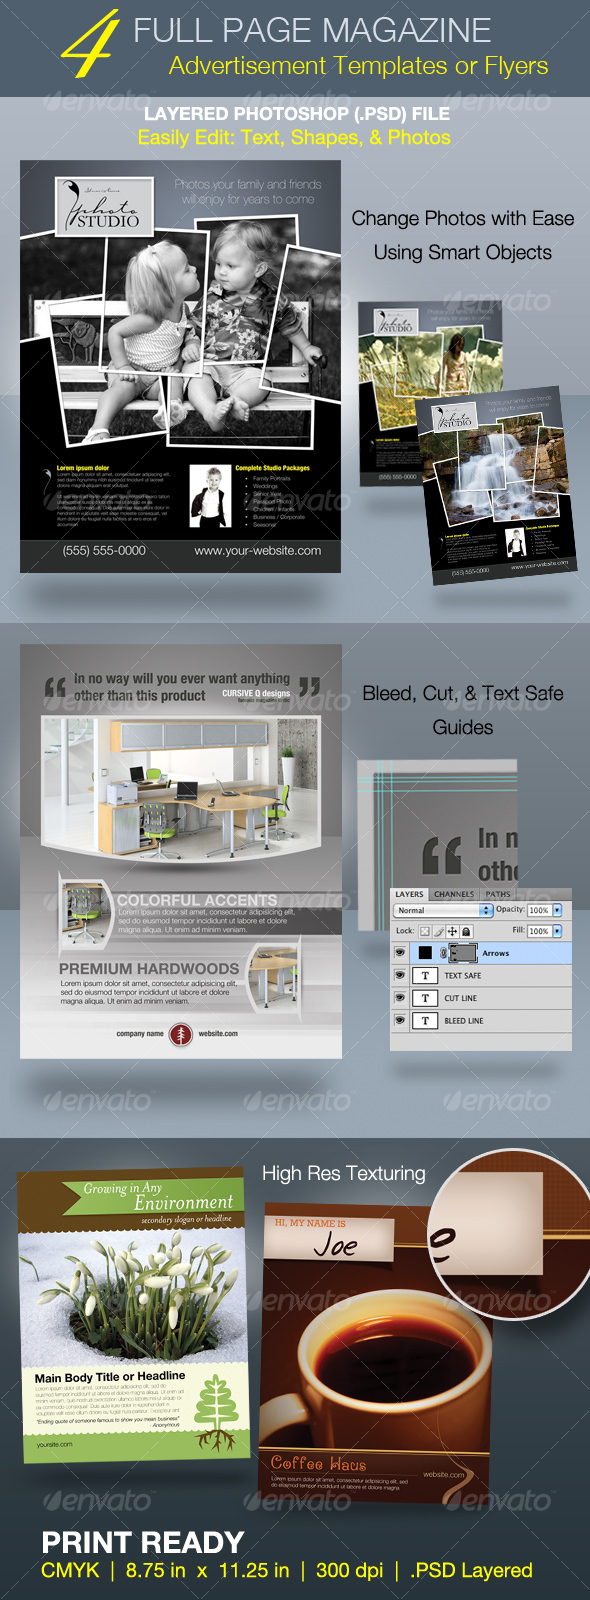 GraphicRiver Full Page Magazine Ad or Flyer Templates 76133